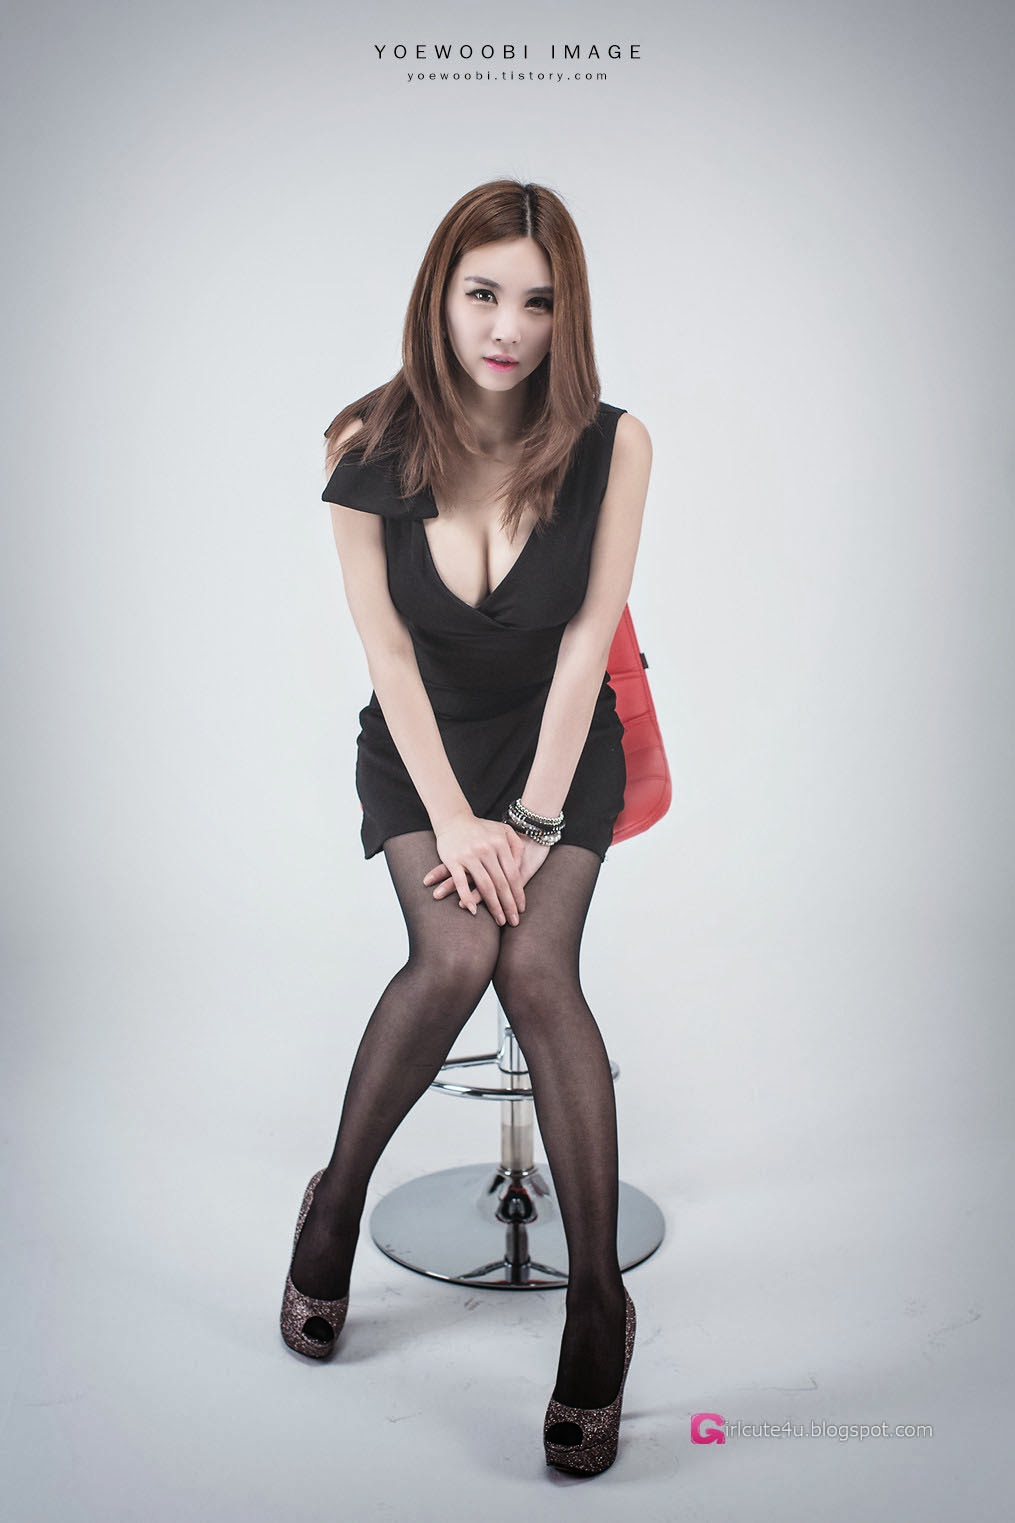 5 Lee Eun Yu - Little Black Dress - very cute asian girl-girlcute4u.blogspot.com